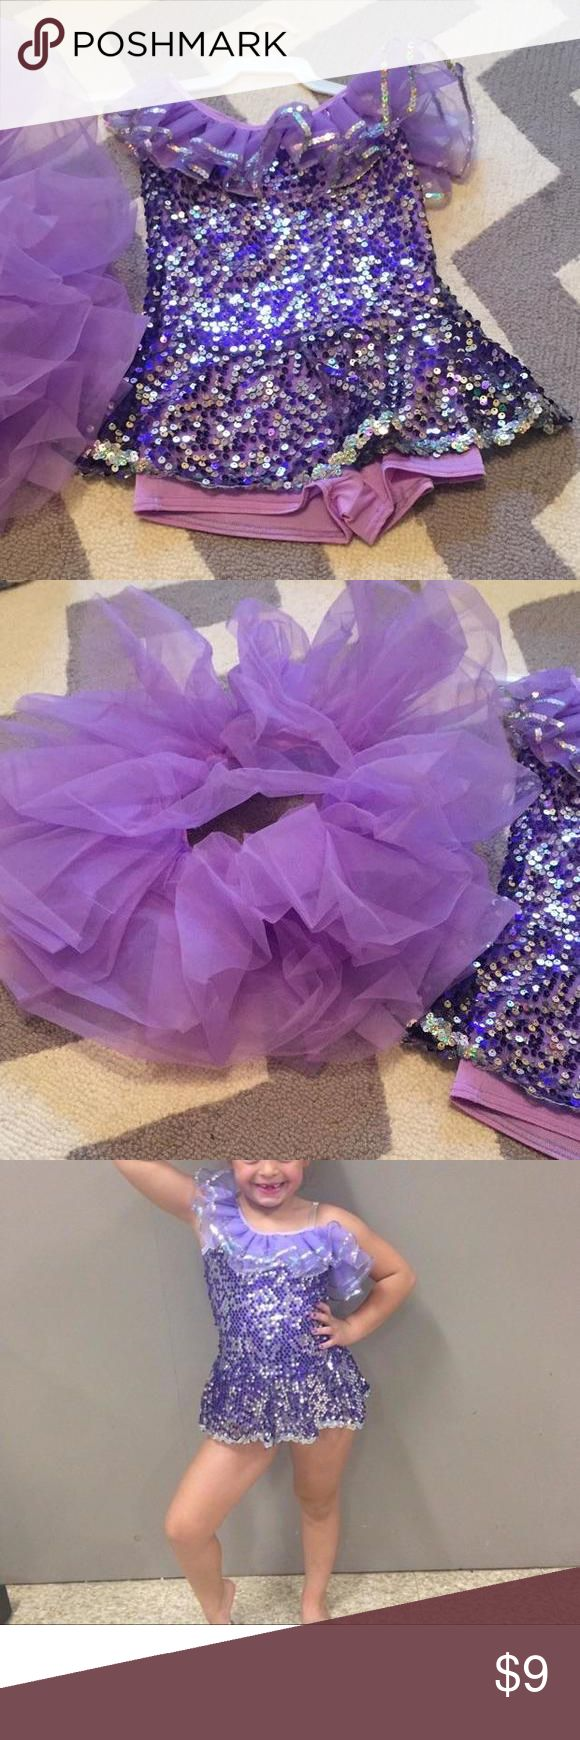 Dance costume Great for Halloween or dress up! Worn one time. Purple body suit with sequin overlay and detachable purple tutu. Sz. Child medium- equivalent to about a 6 Costumes Dance